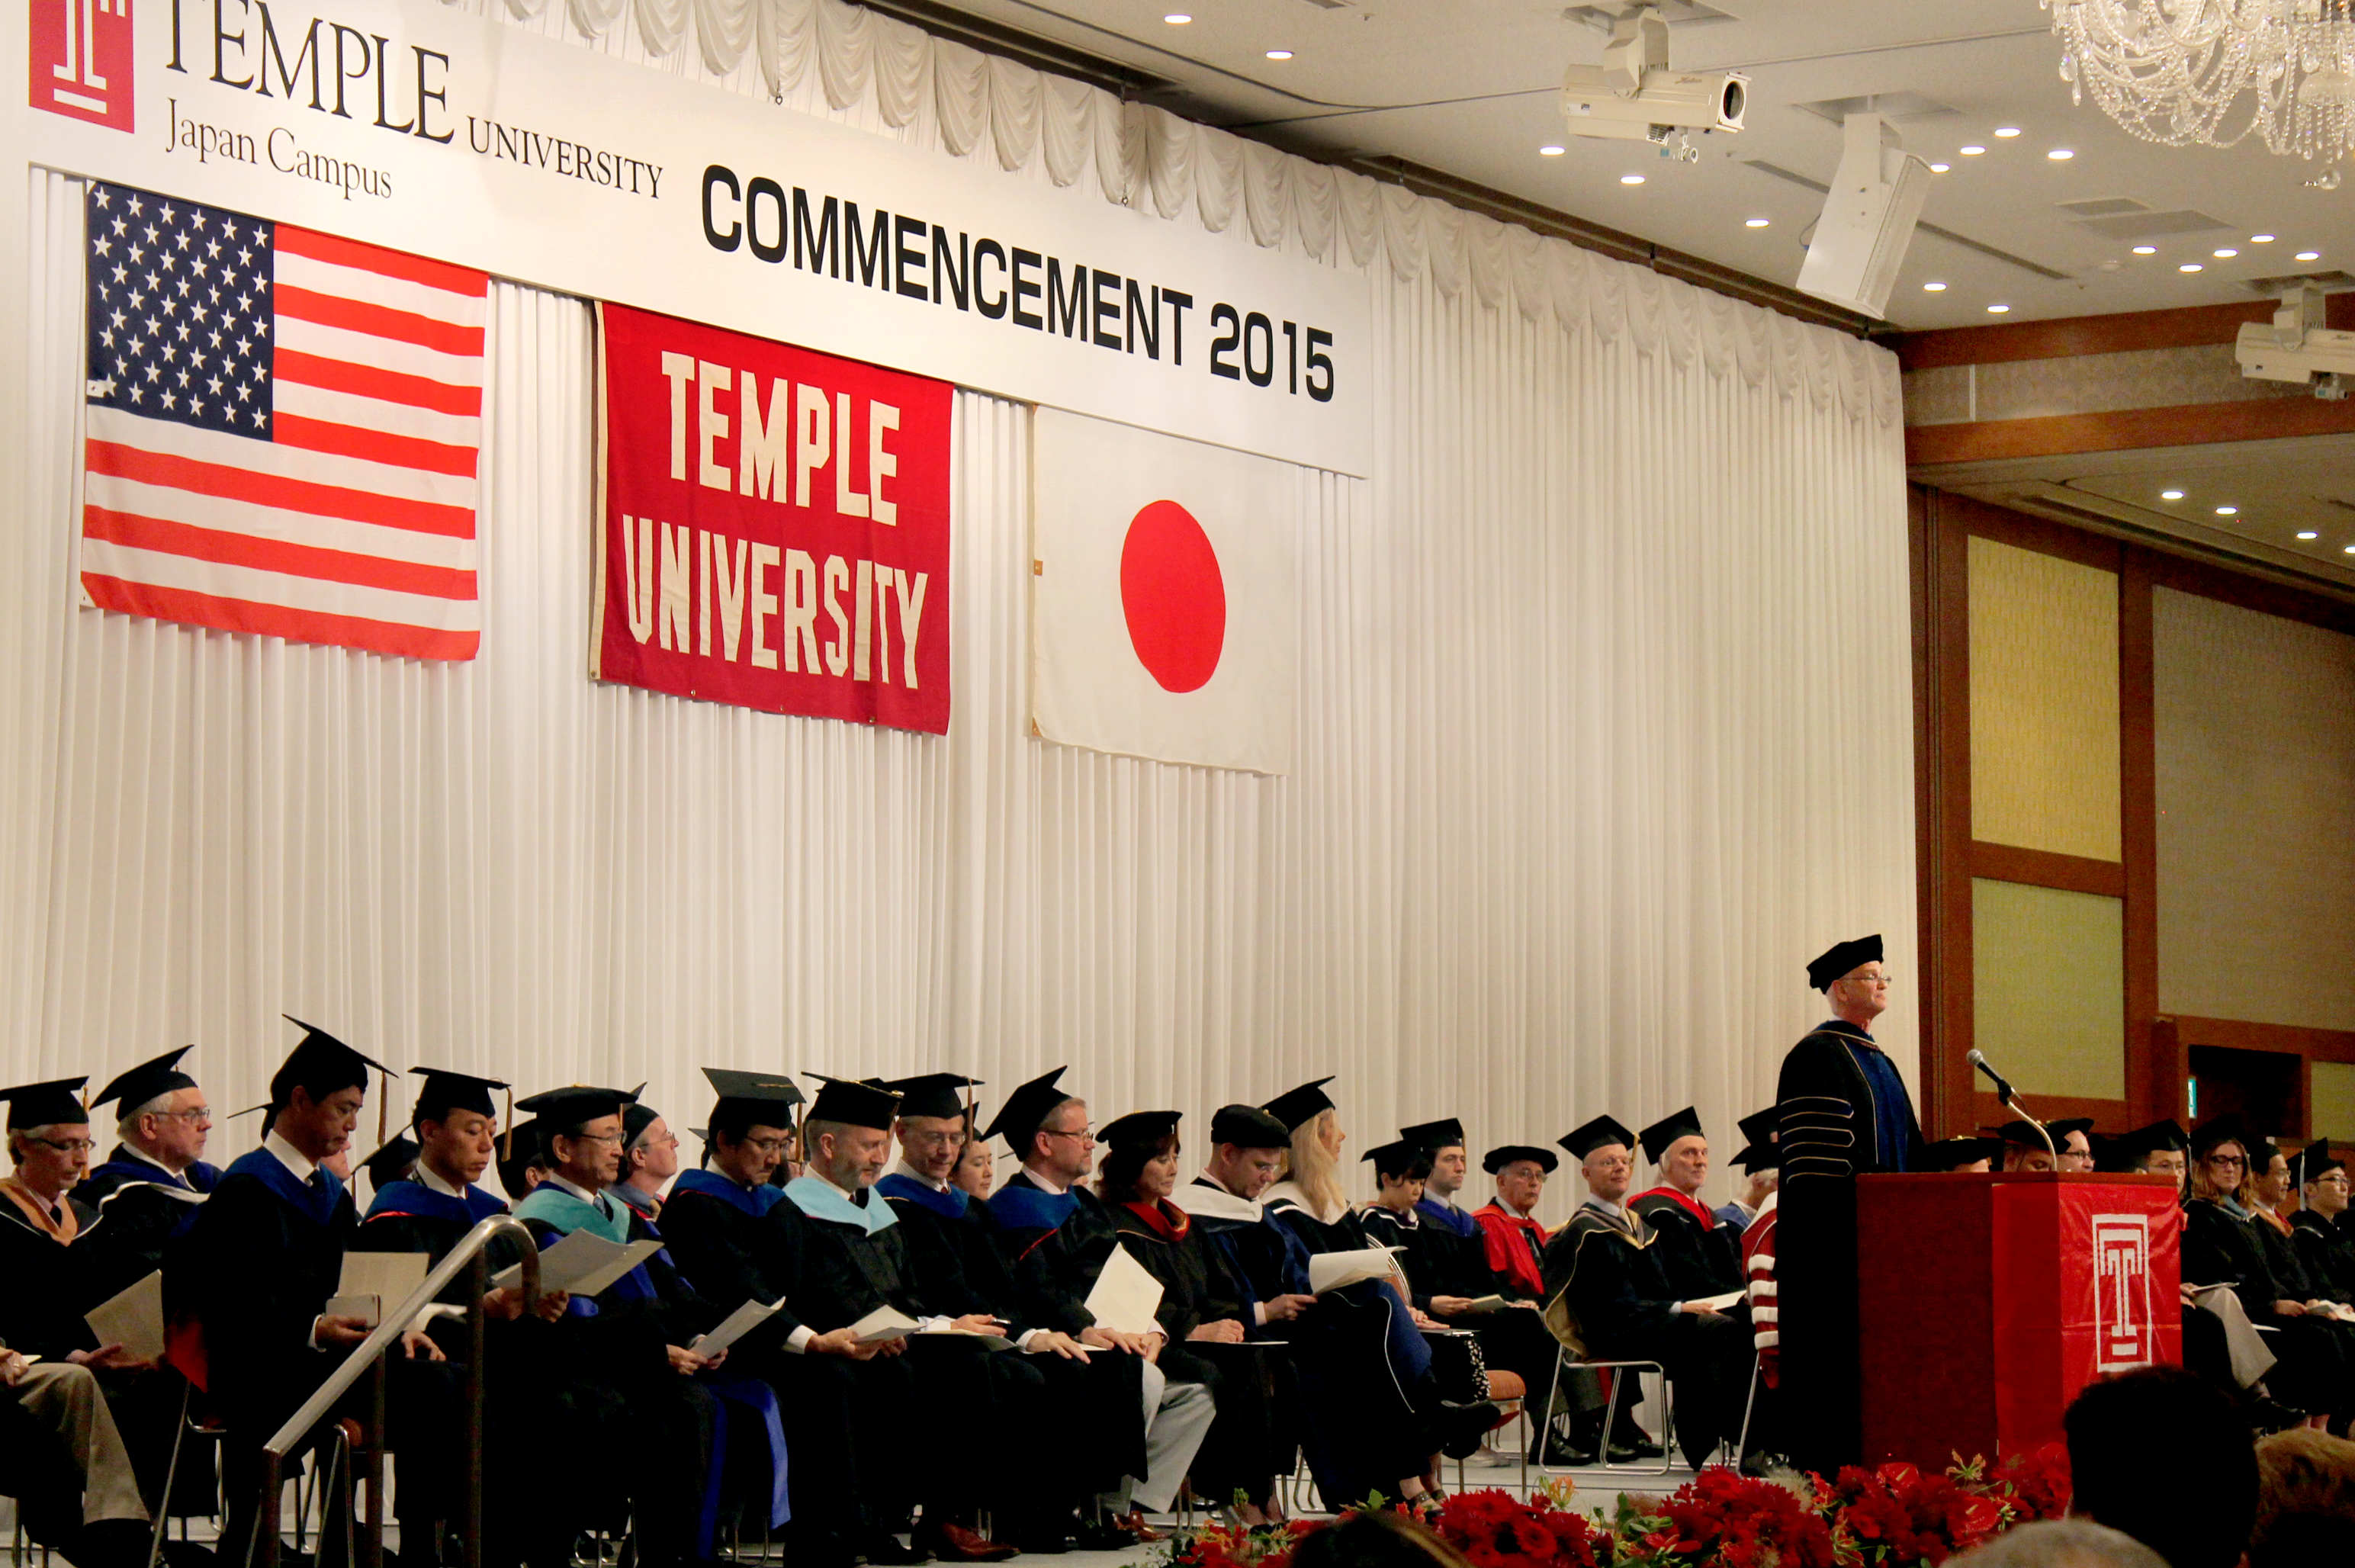 TUJ 2015 Graduation Commencement: Ceremony And Reception